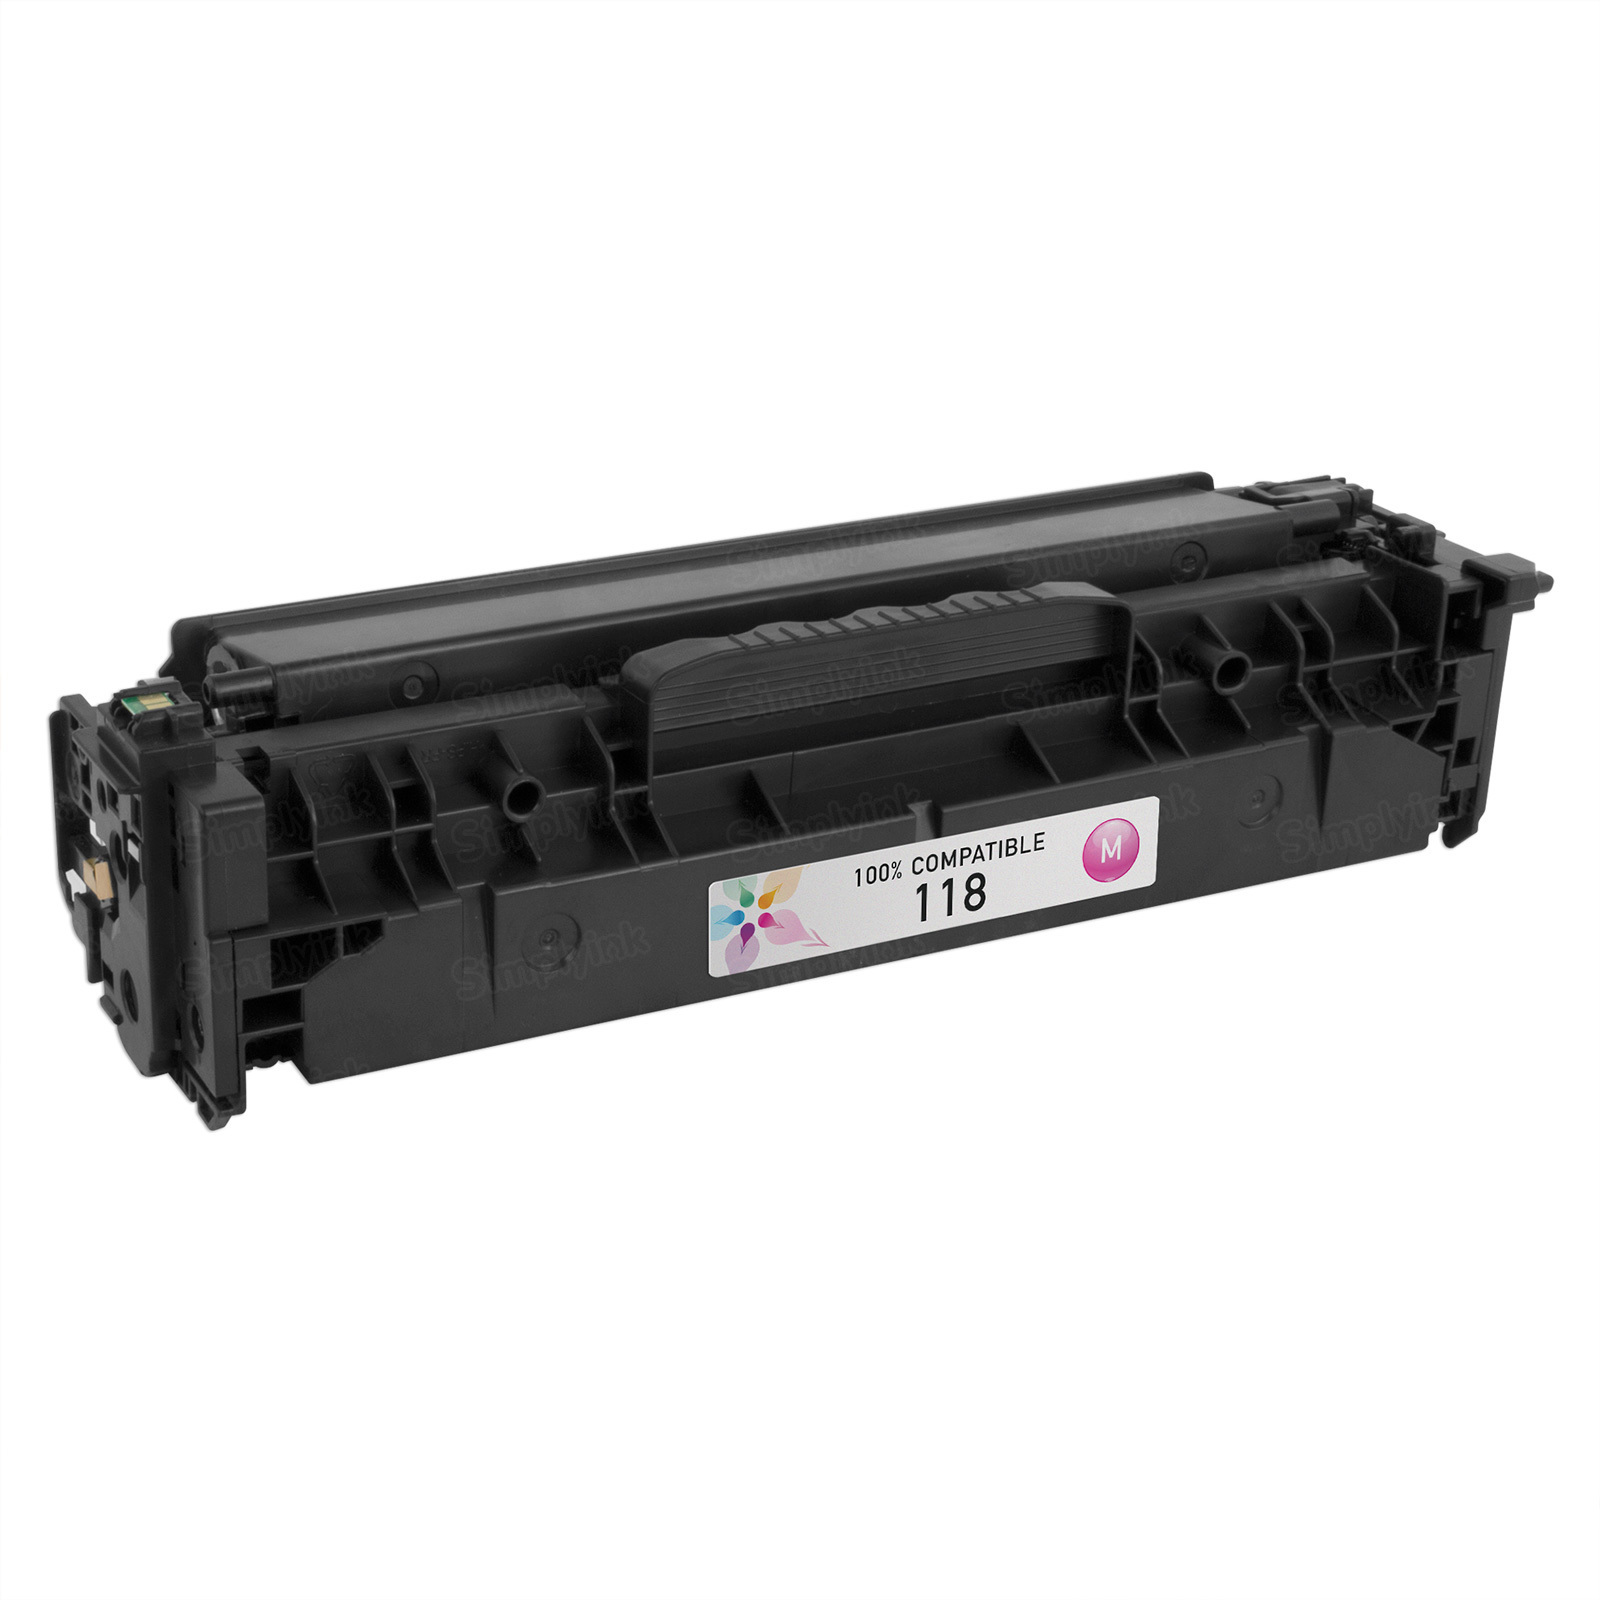 Canon 118 Magenta Toner Cartridge, Compatible